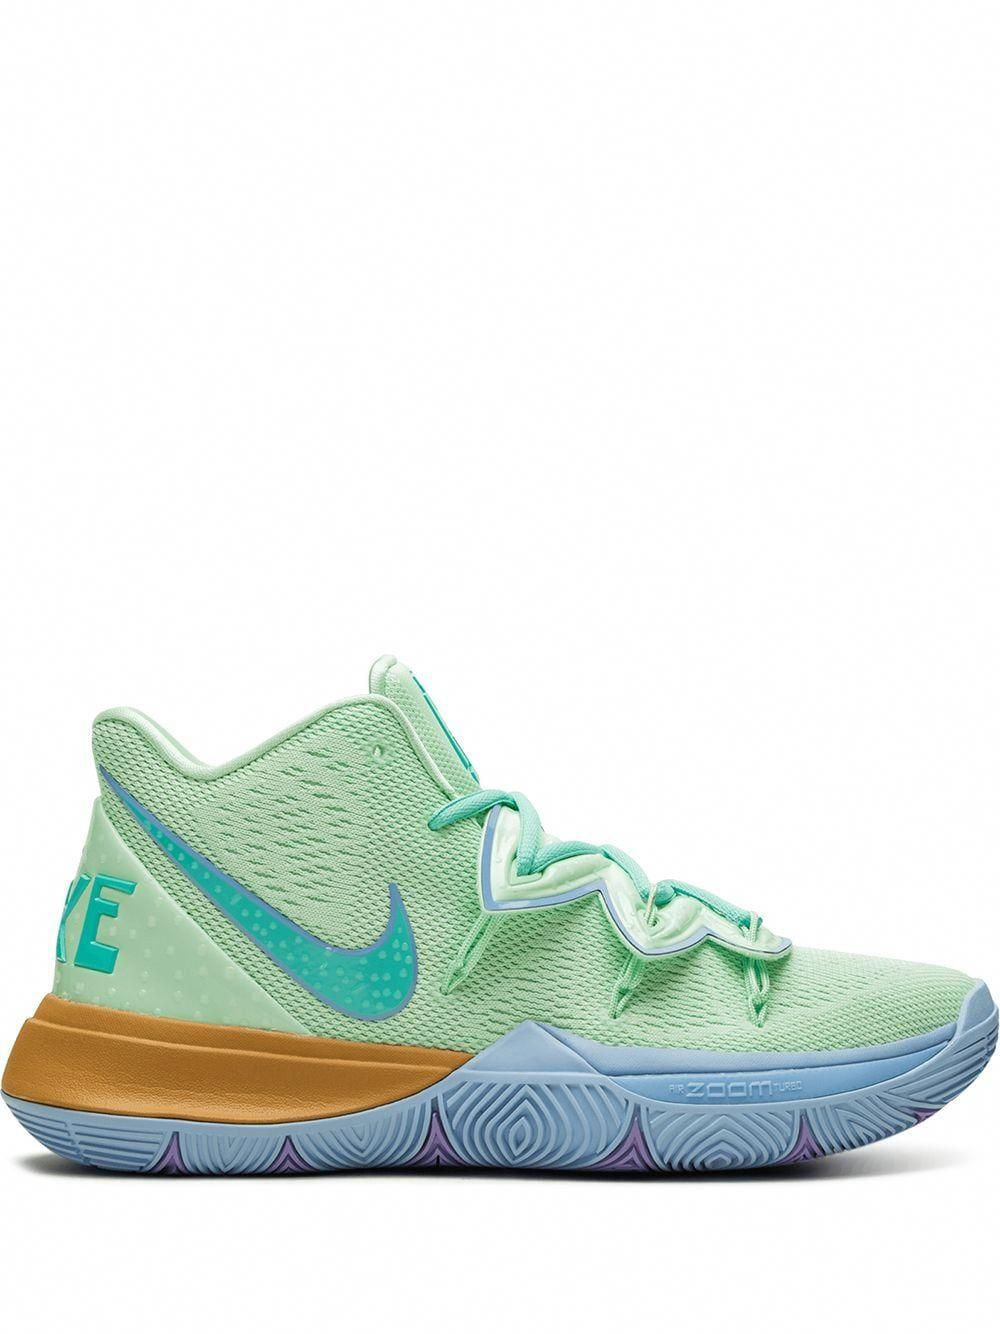 Girls basketball shoes, Kyrie irving